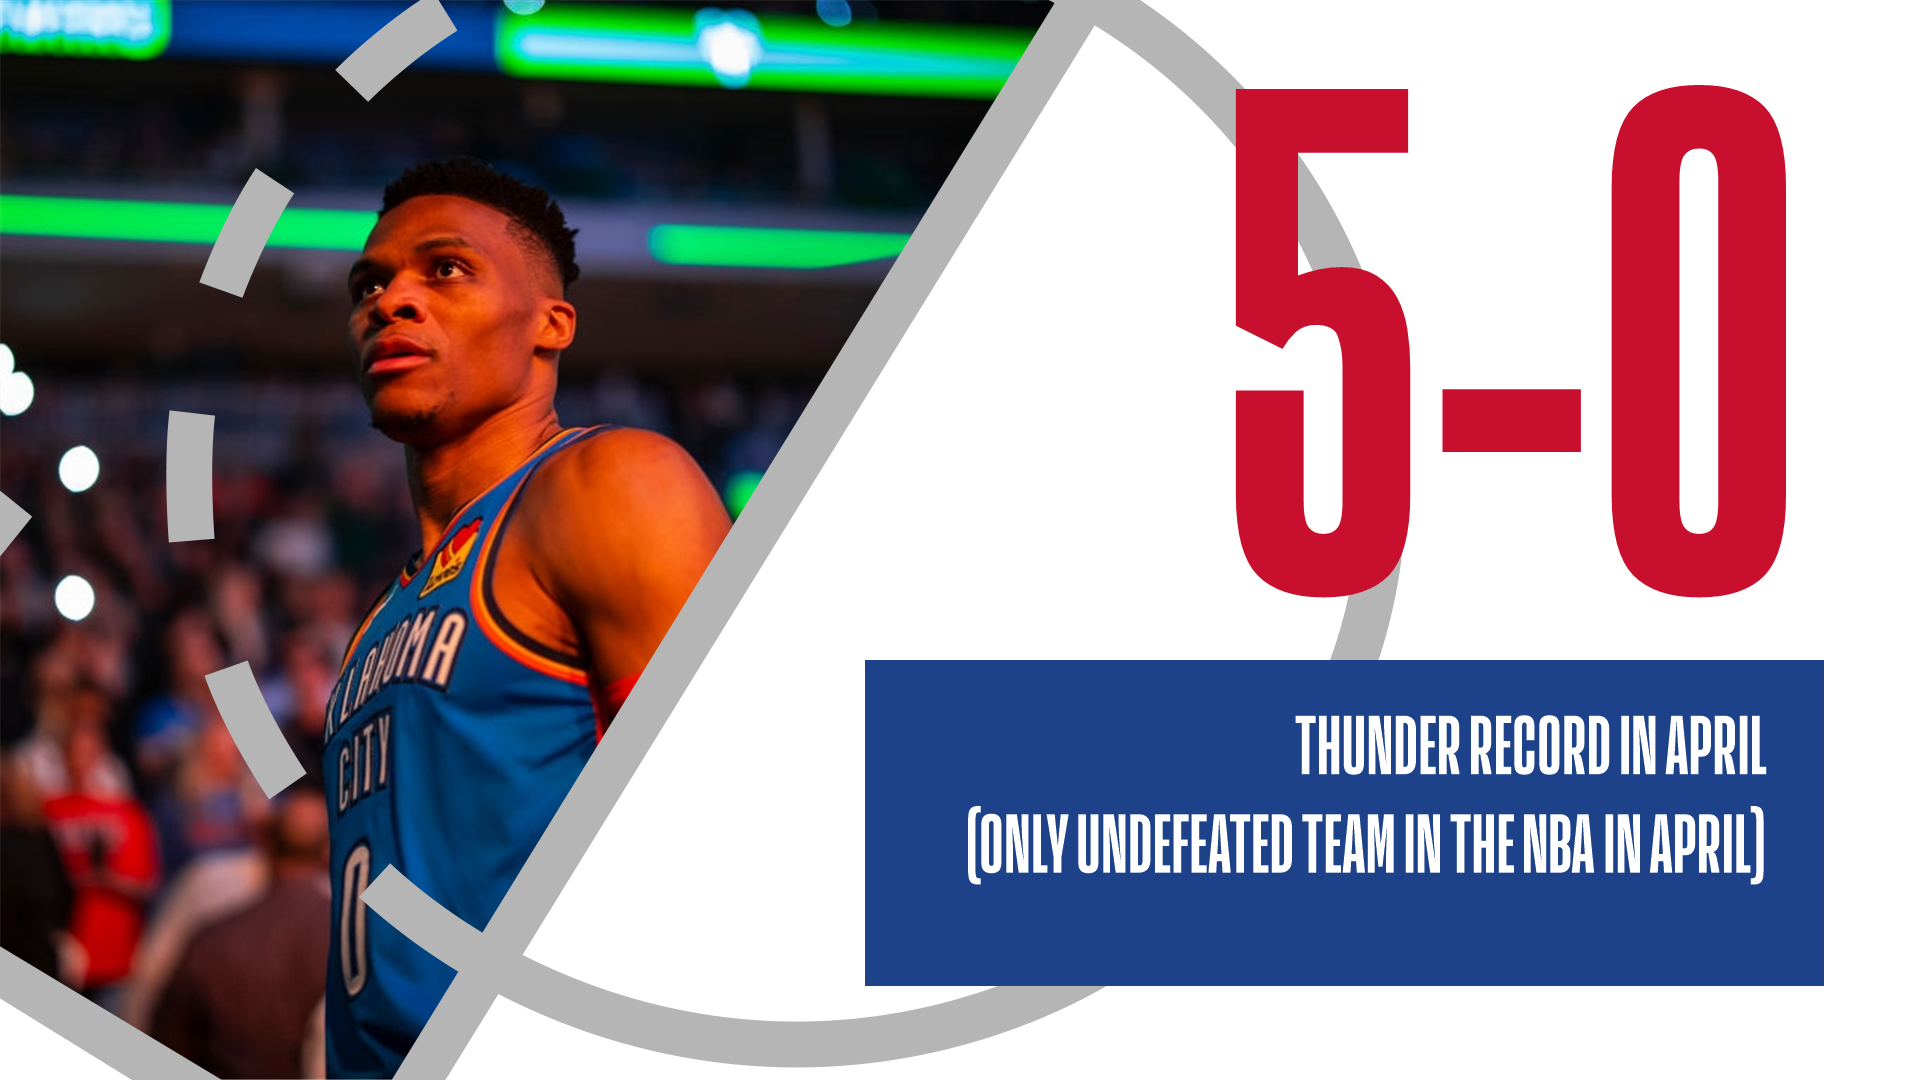 Russell Westbrook and OKC went a perfect 5-0 in April to finish off the regular season.